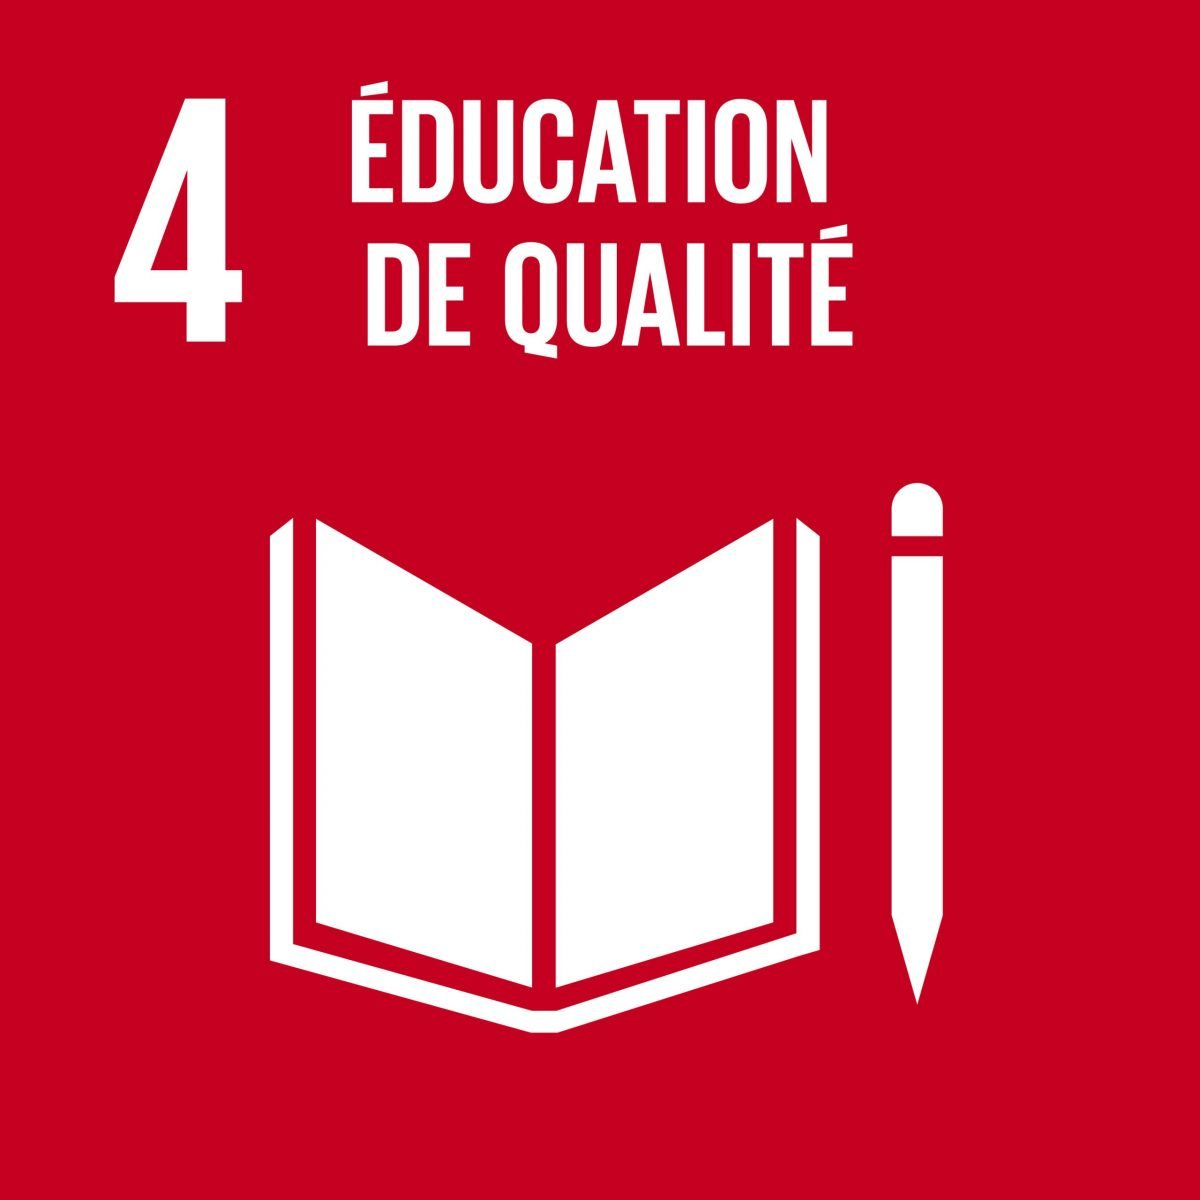 Education de Qualite - Objectif de Developpement Durable